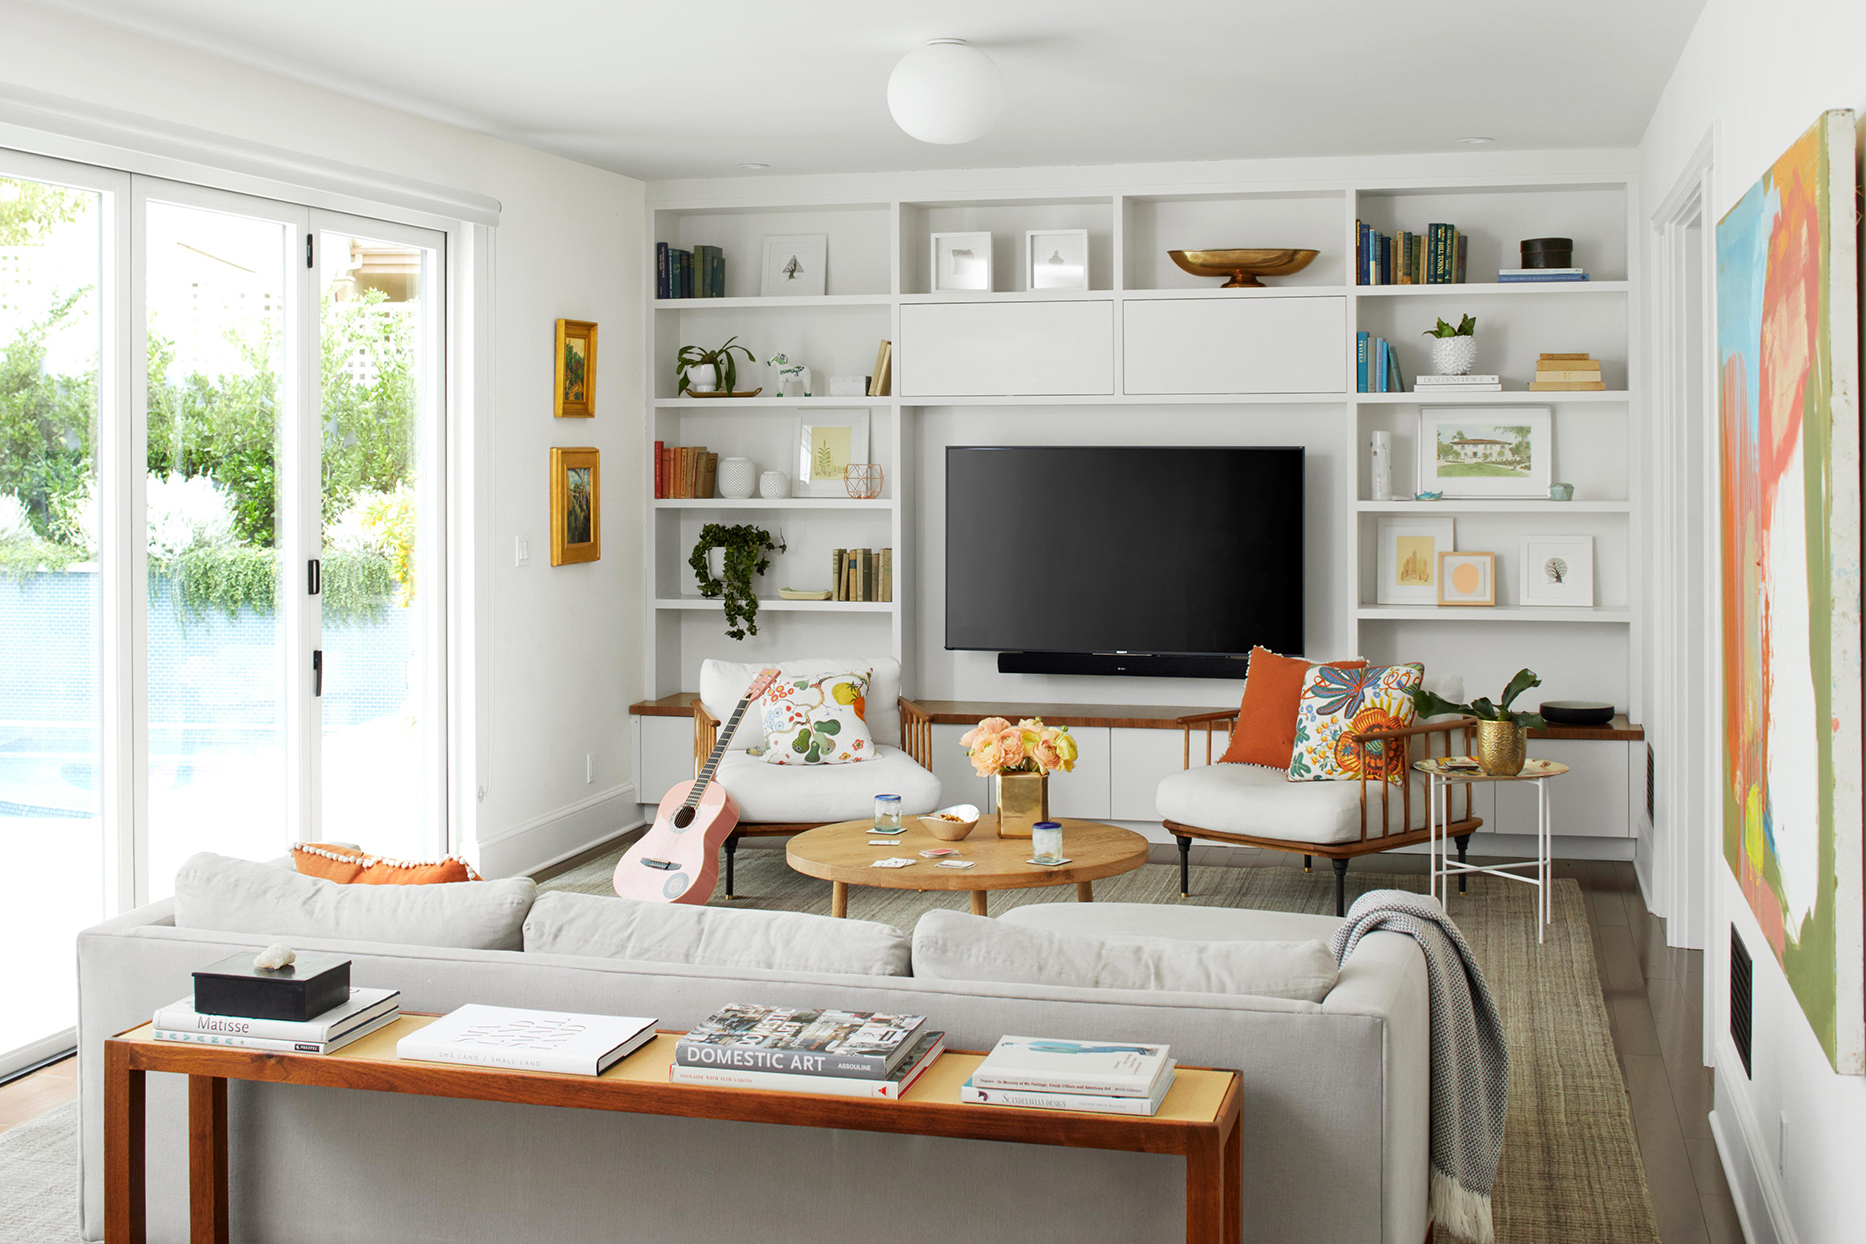 10 Stylish Ways to Decorate with a TV  Better Homes & Gardens